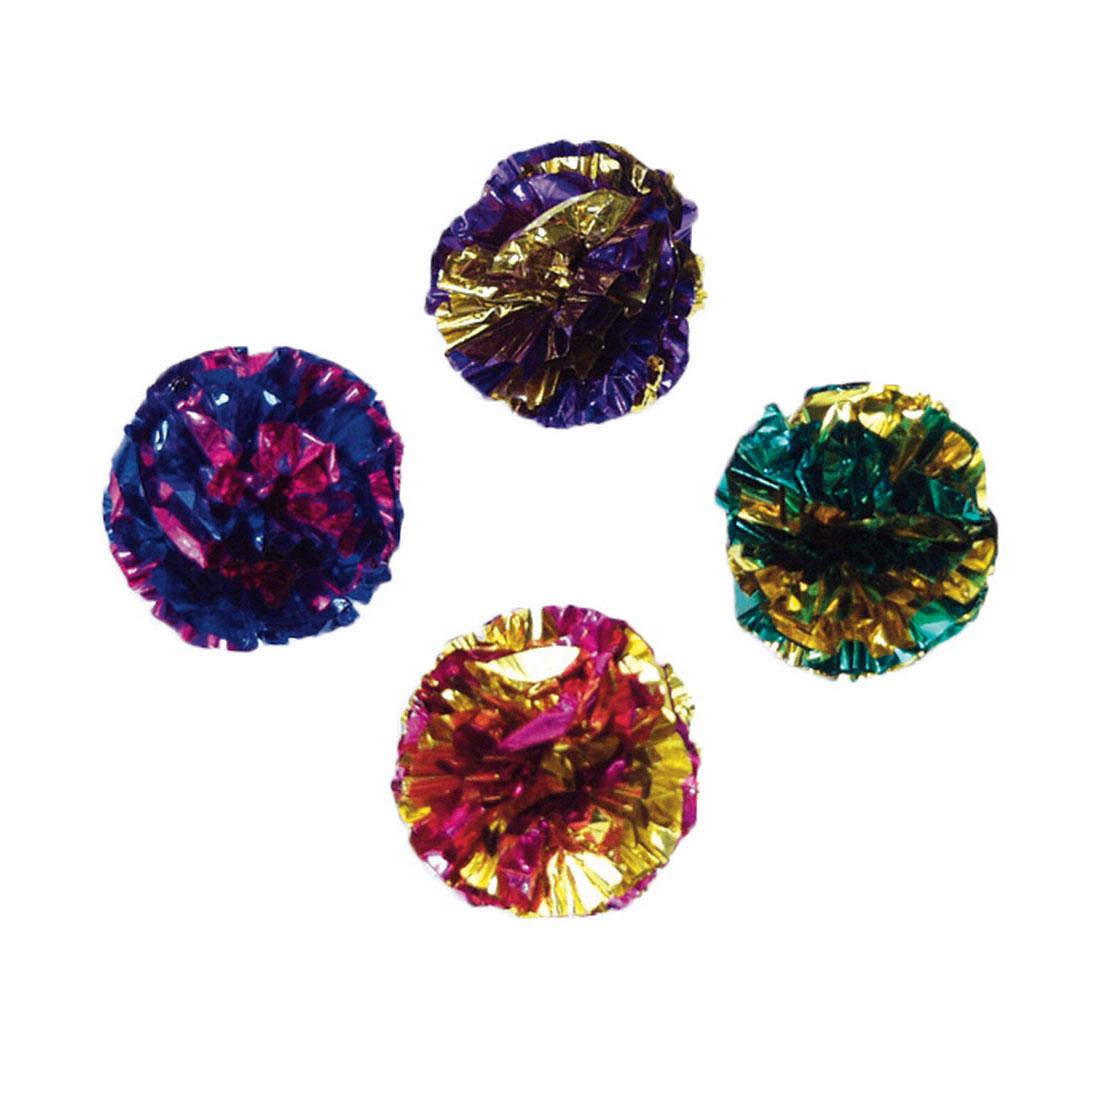 Turbo Krinkle Ball Cat Toy, Assorted Colors, 4-pk